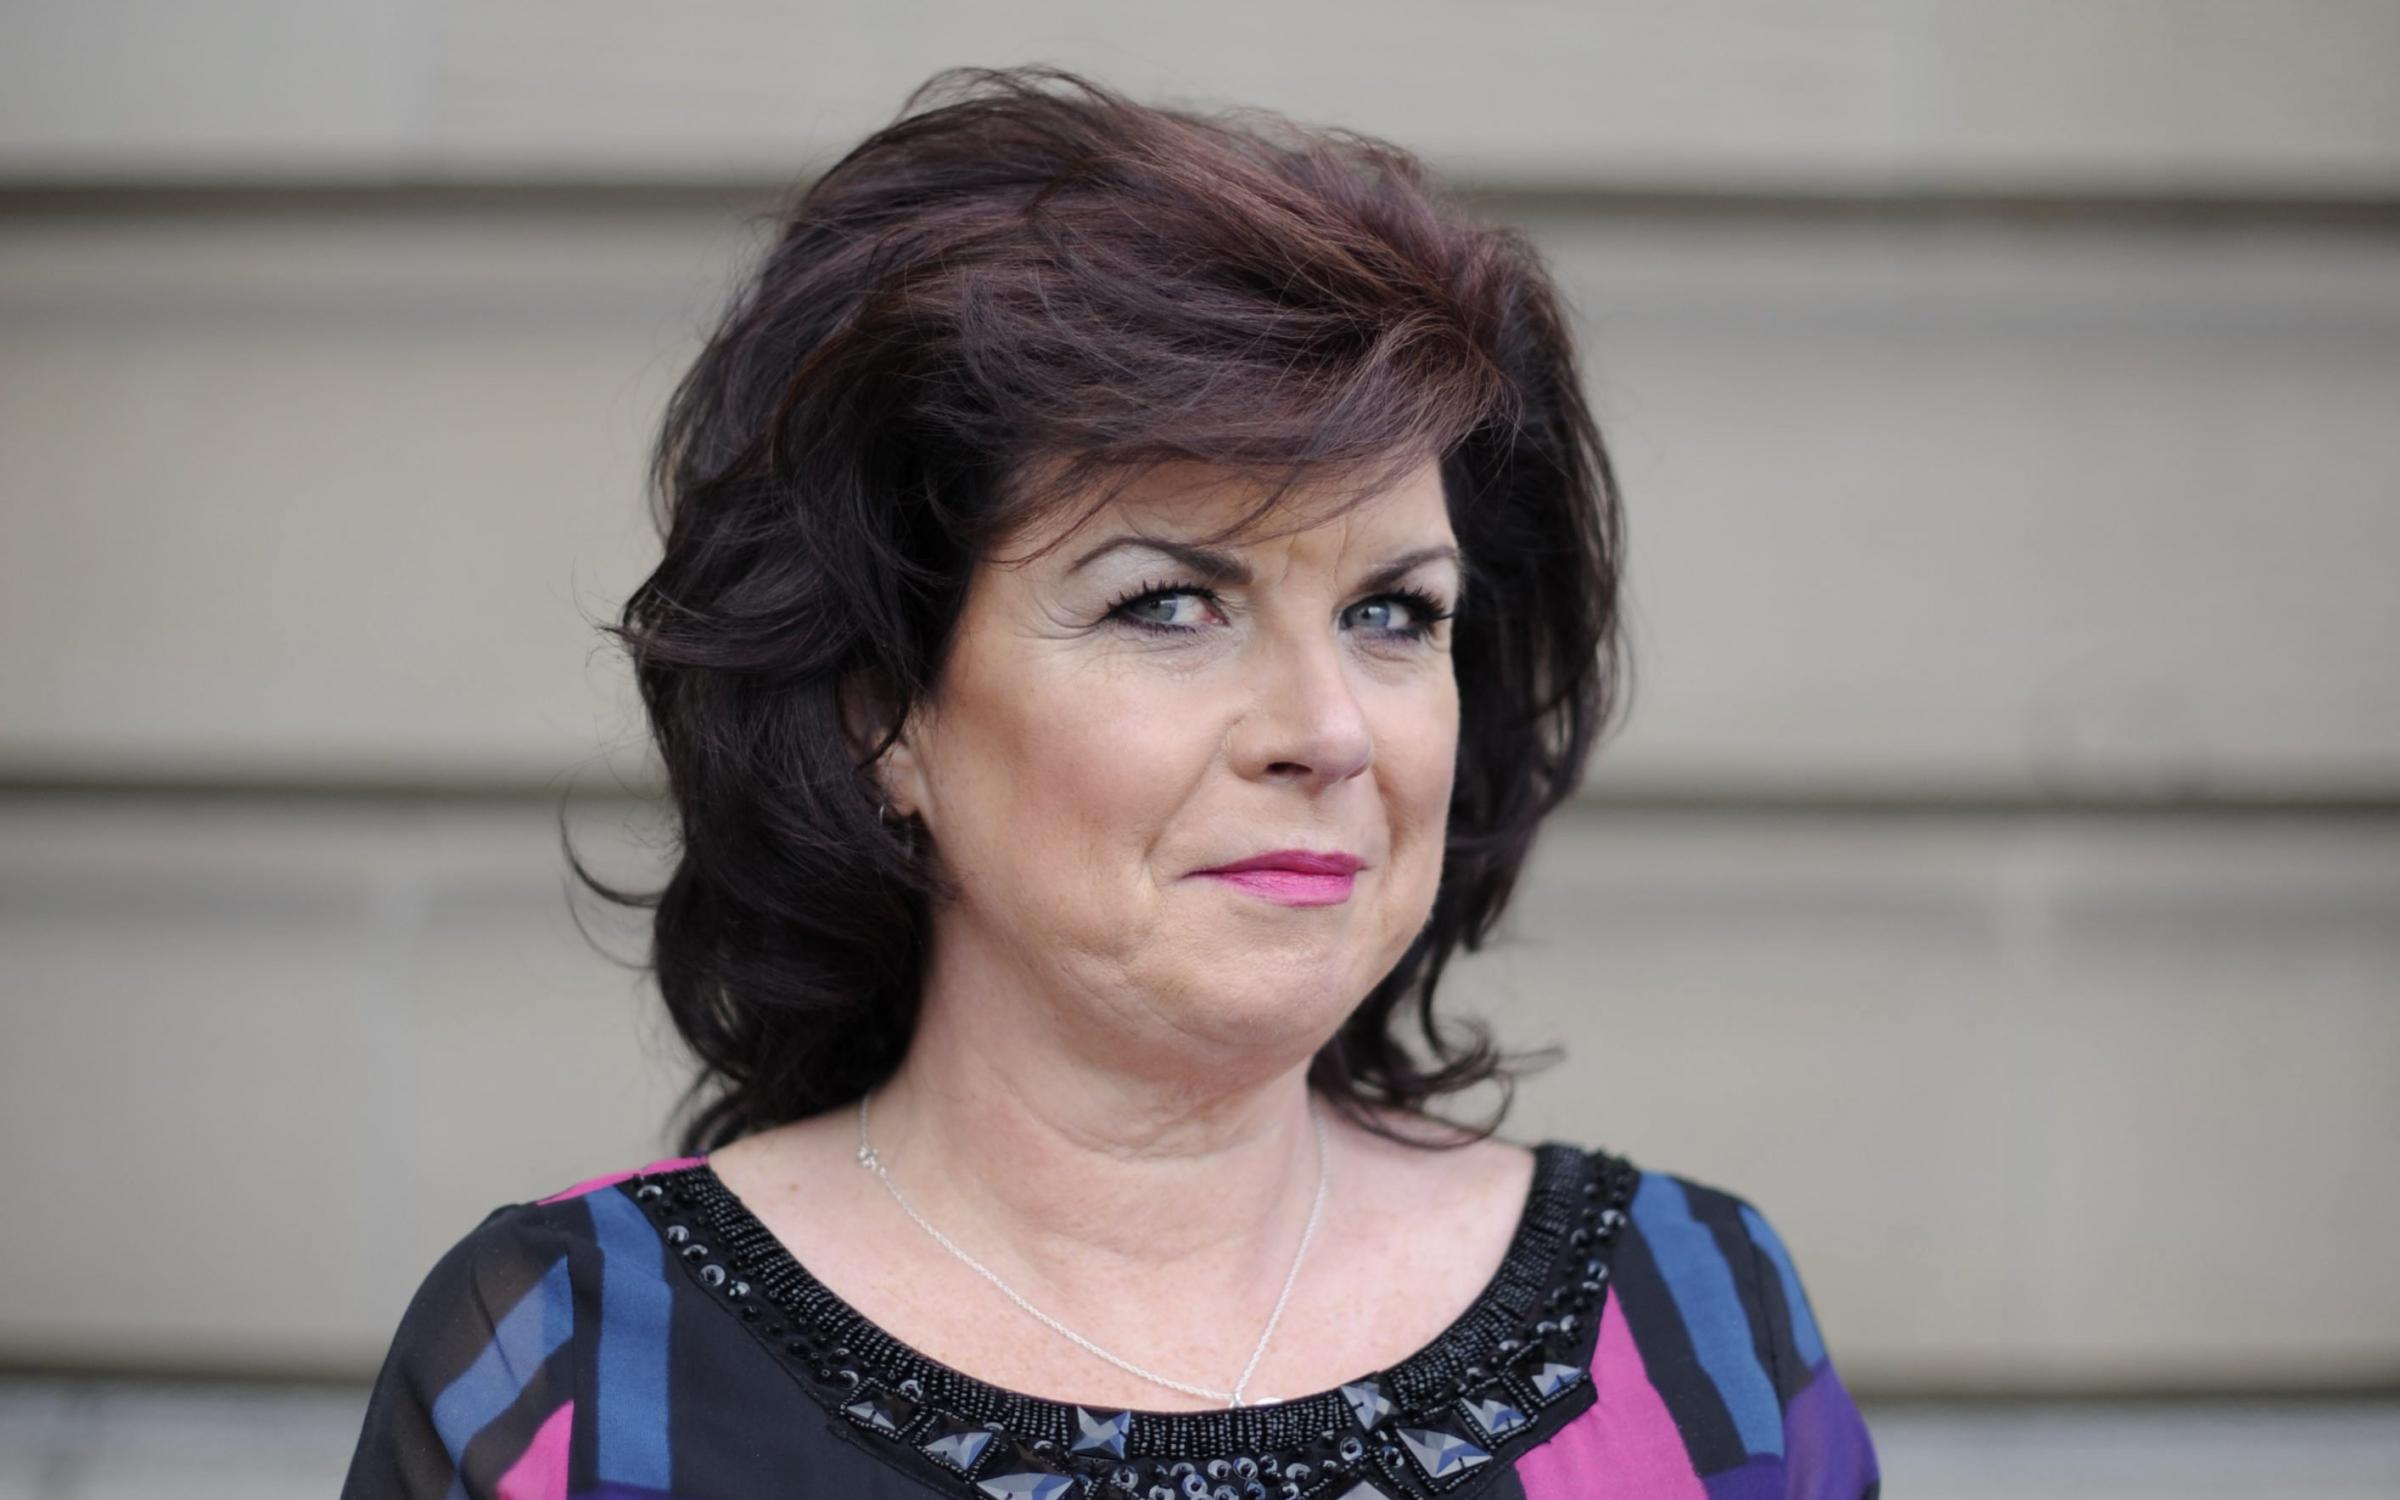 Elaine C Smith has been working on the project for the last two years